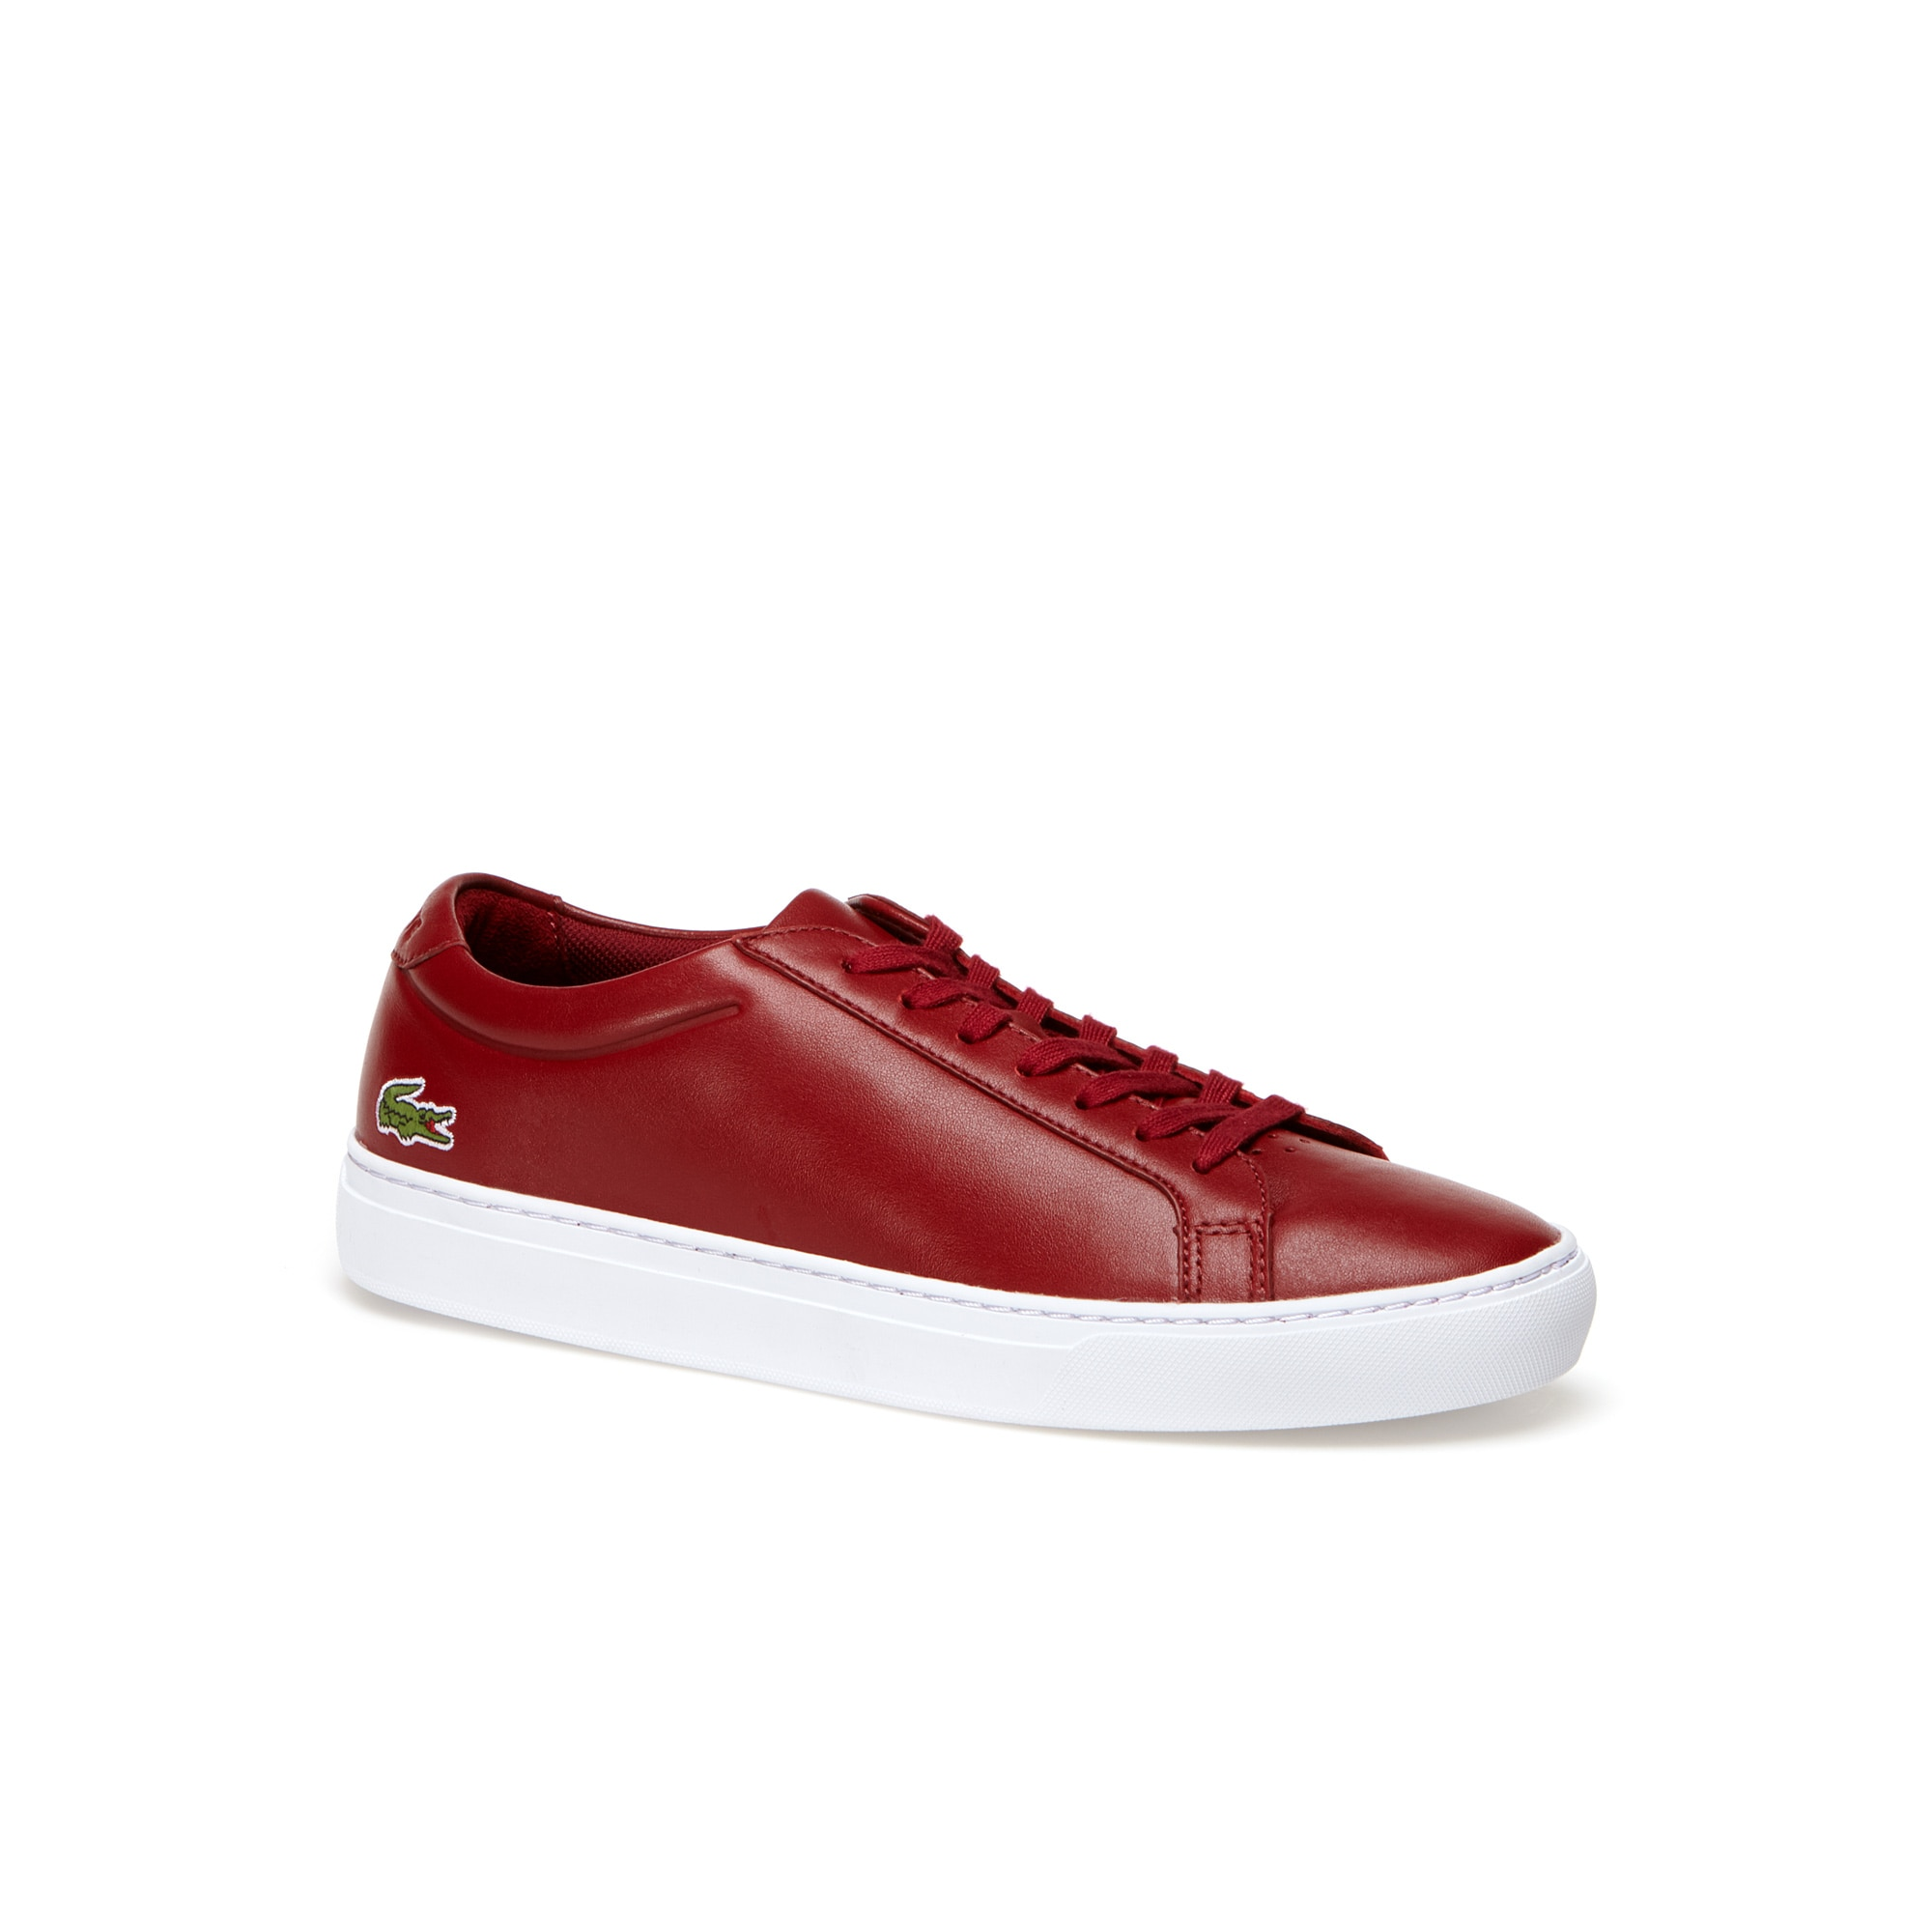 Men's L12.12 shoe in premium leather